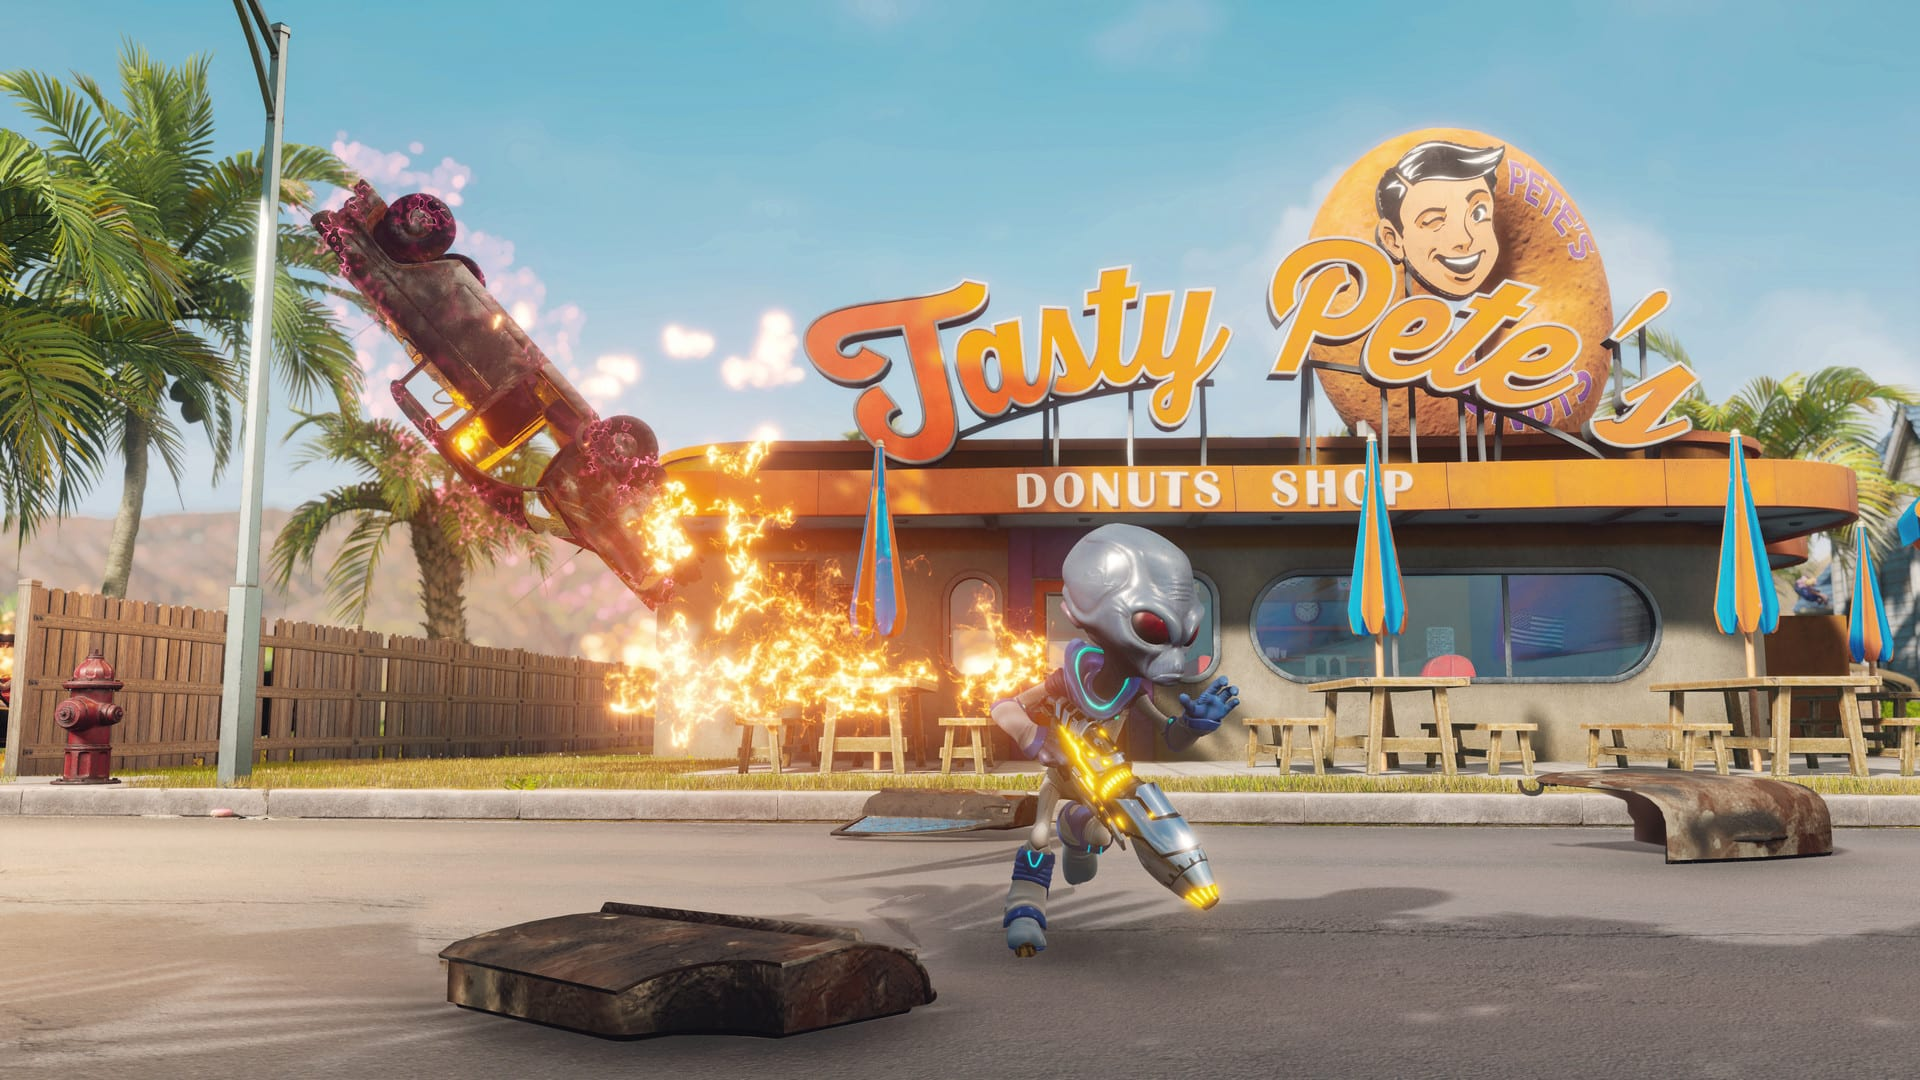 Destroy All Humans! stupid video games are good sometimes